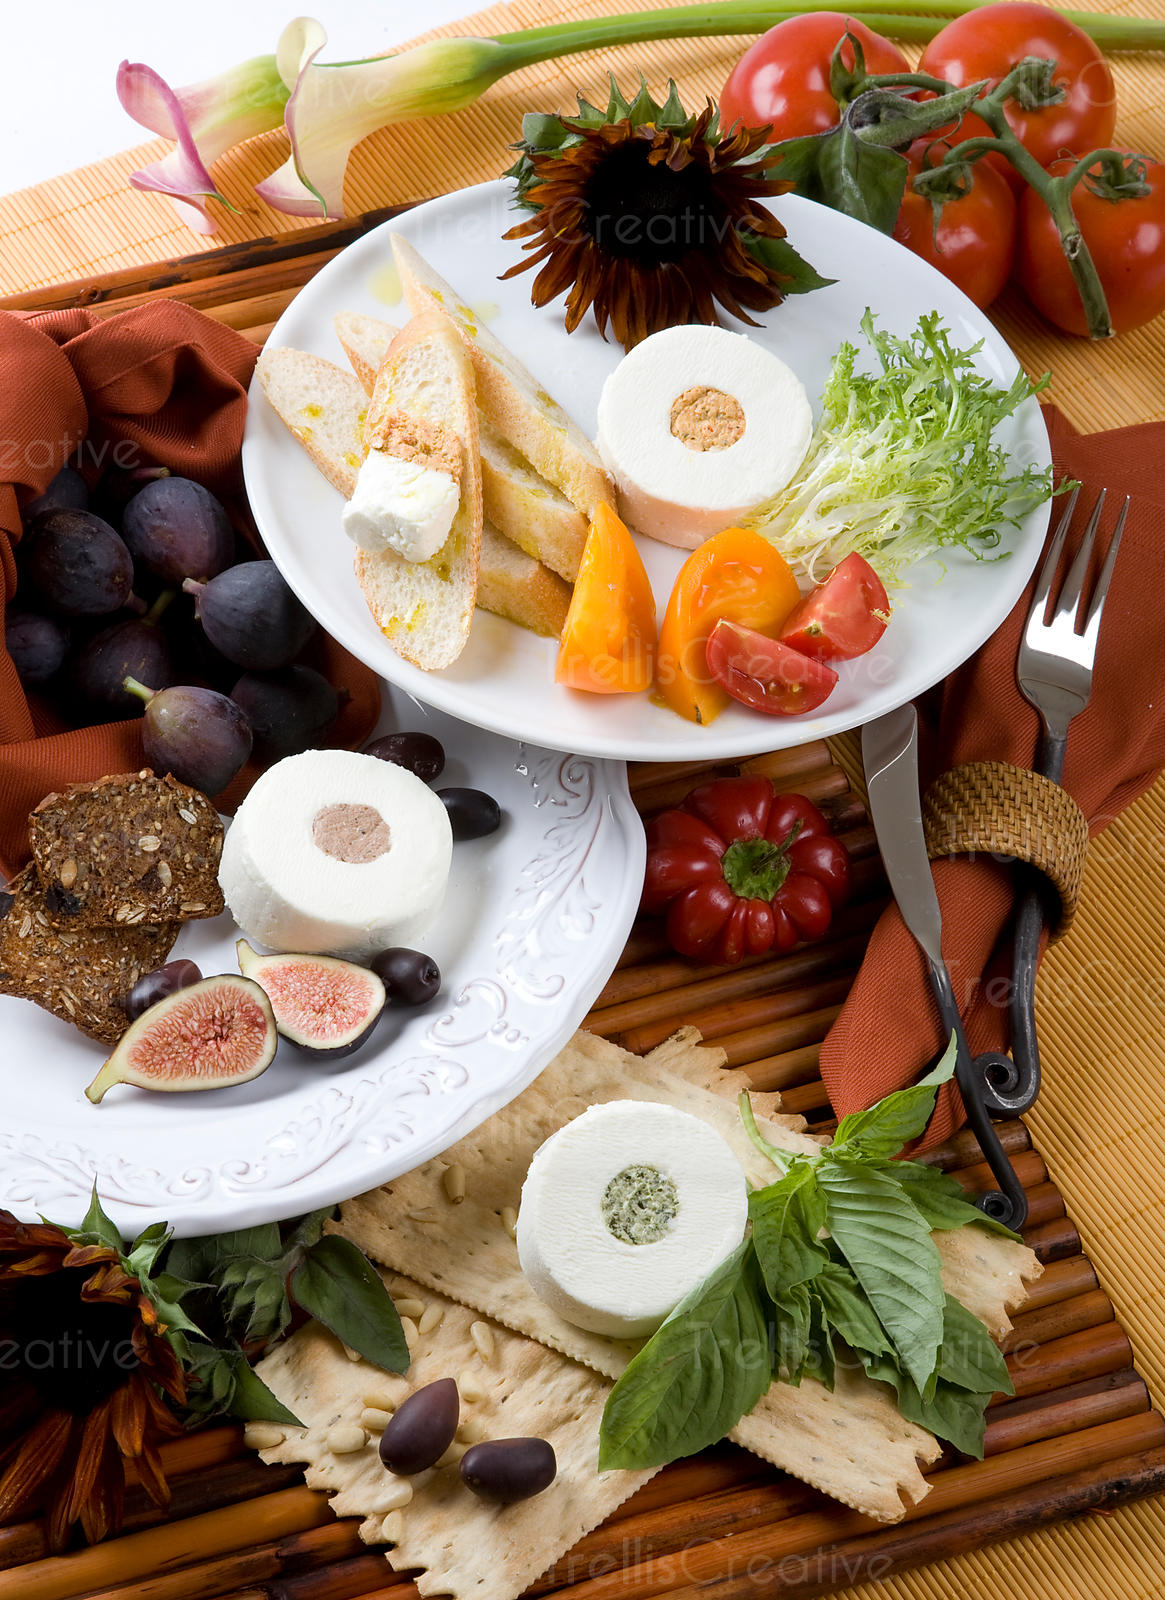 Three goat cheese plates with fruits and vegetables